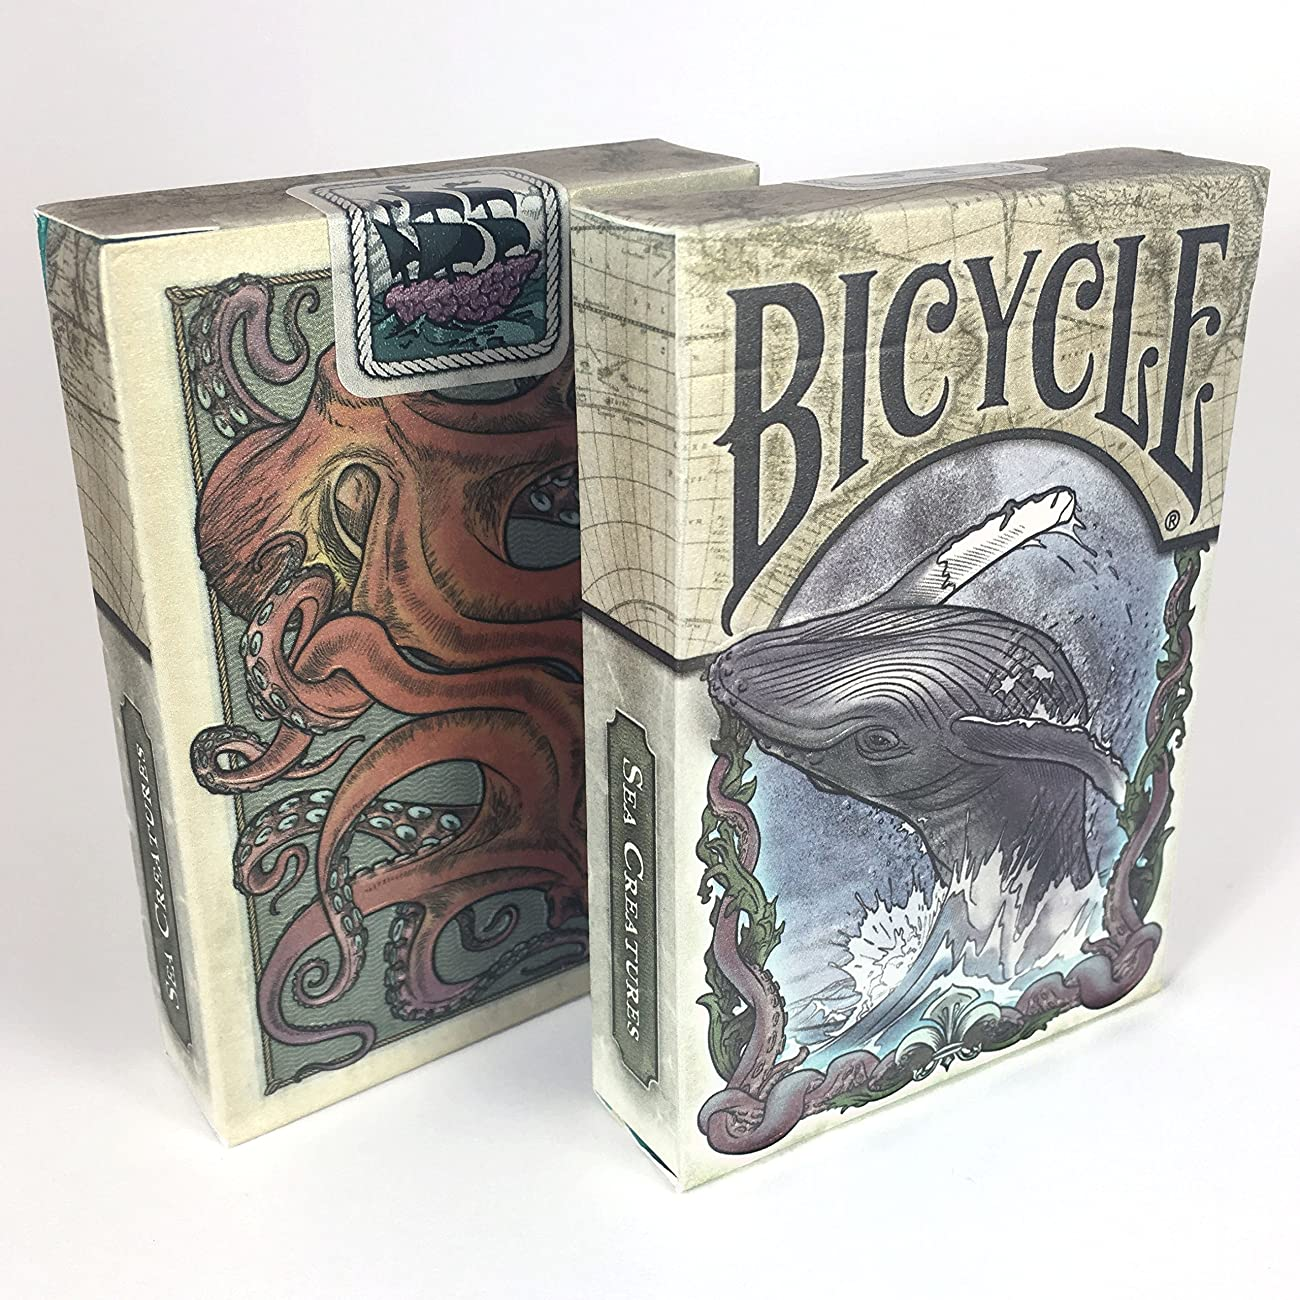 Colorized Sea Creature Themed Bicycle Playing Card Deck, Limited Edition 0